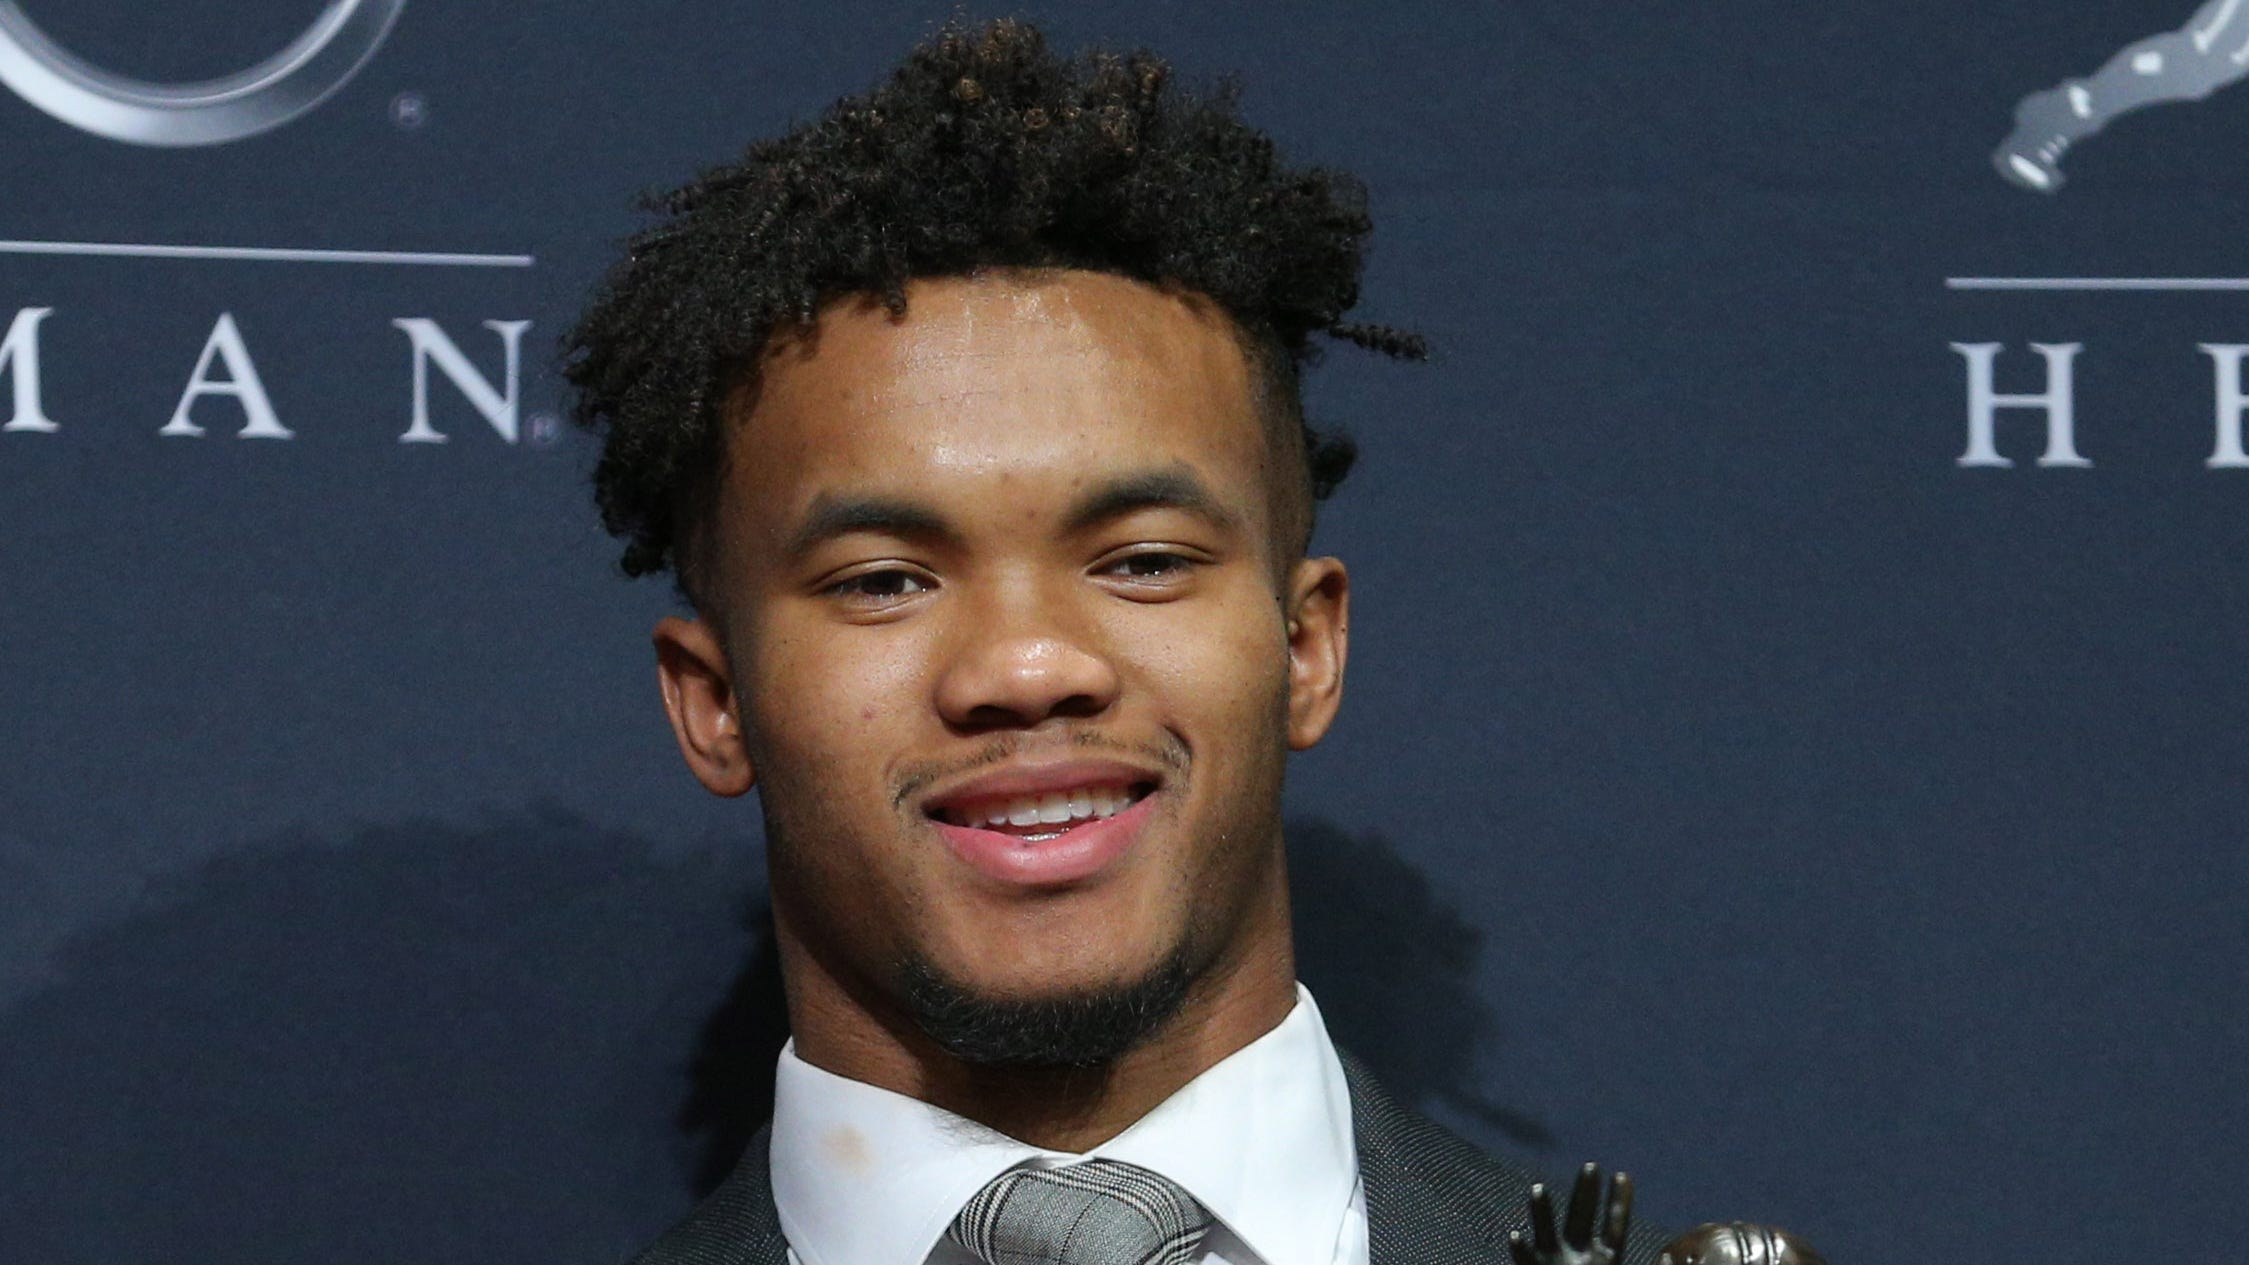 Kyler Murray apologizes for homophobic tweets that resurfaced after he won Heisman Trophy